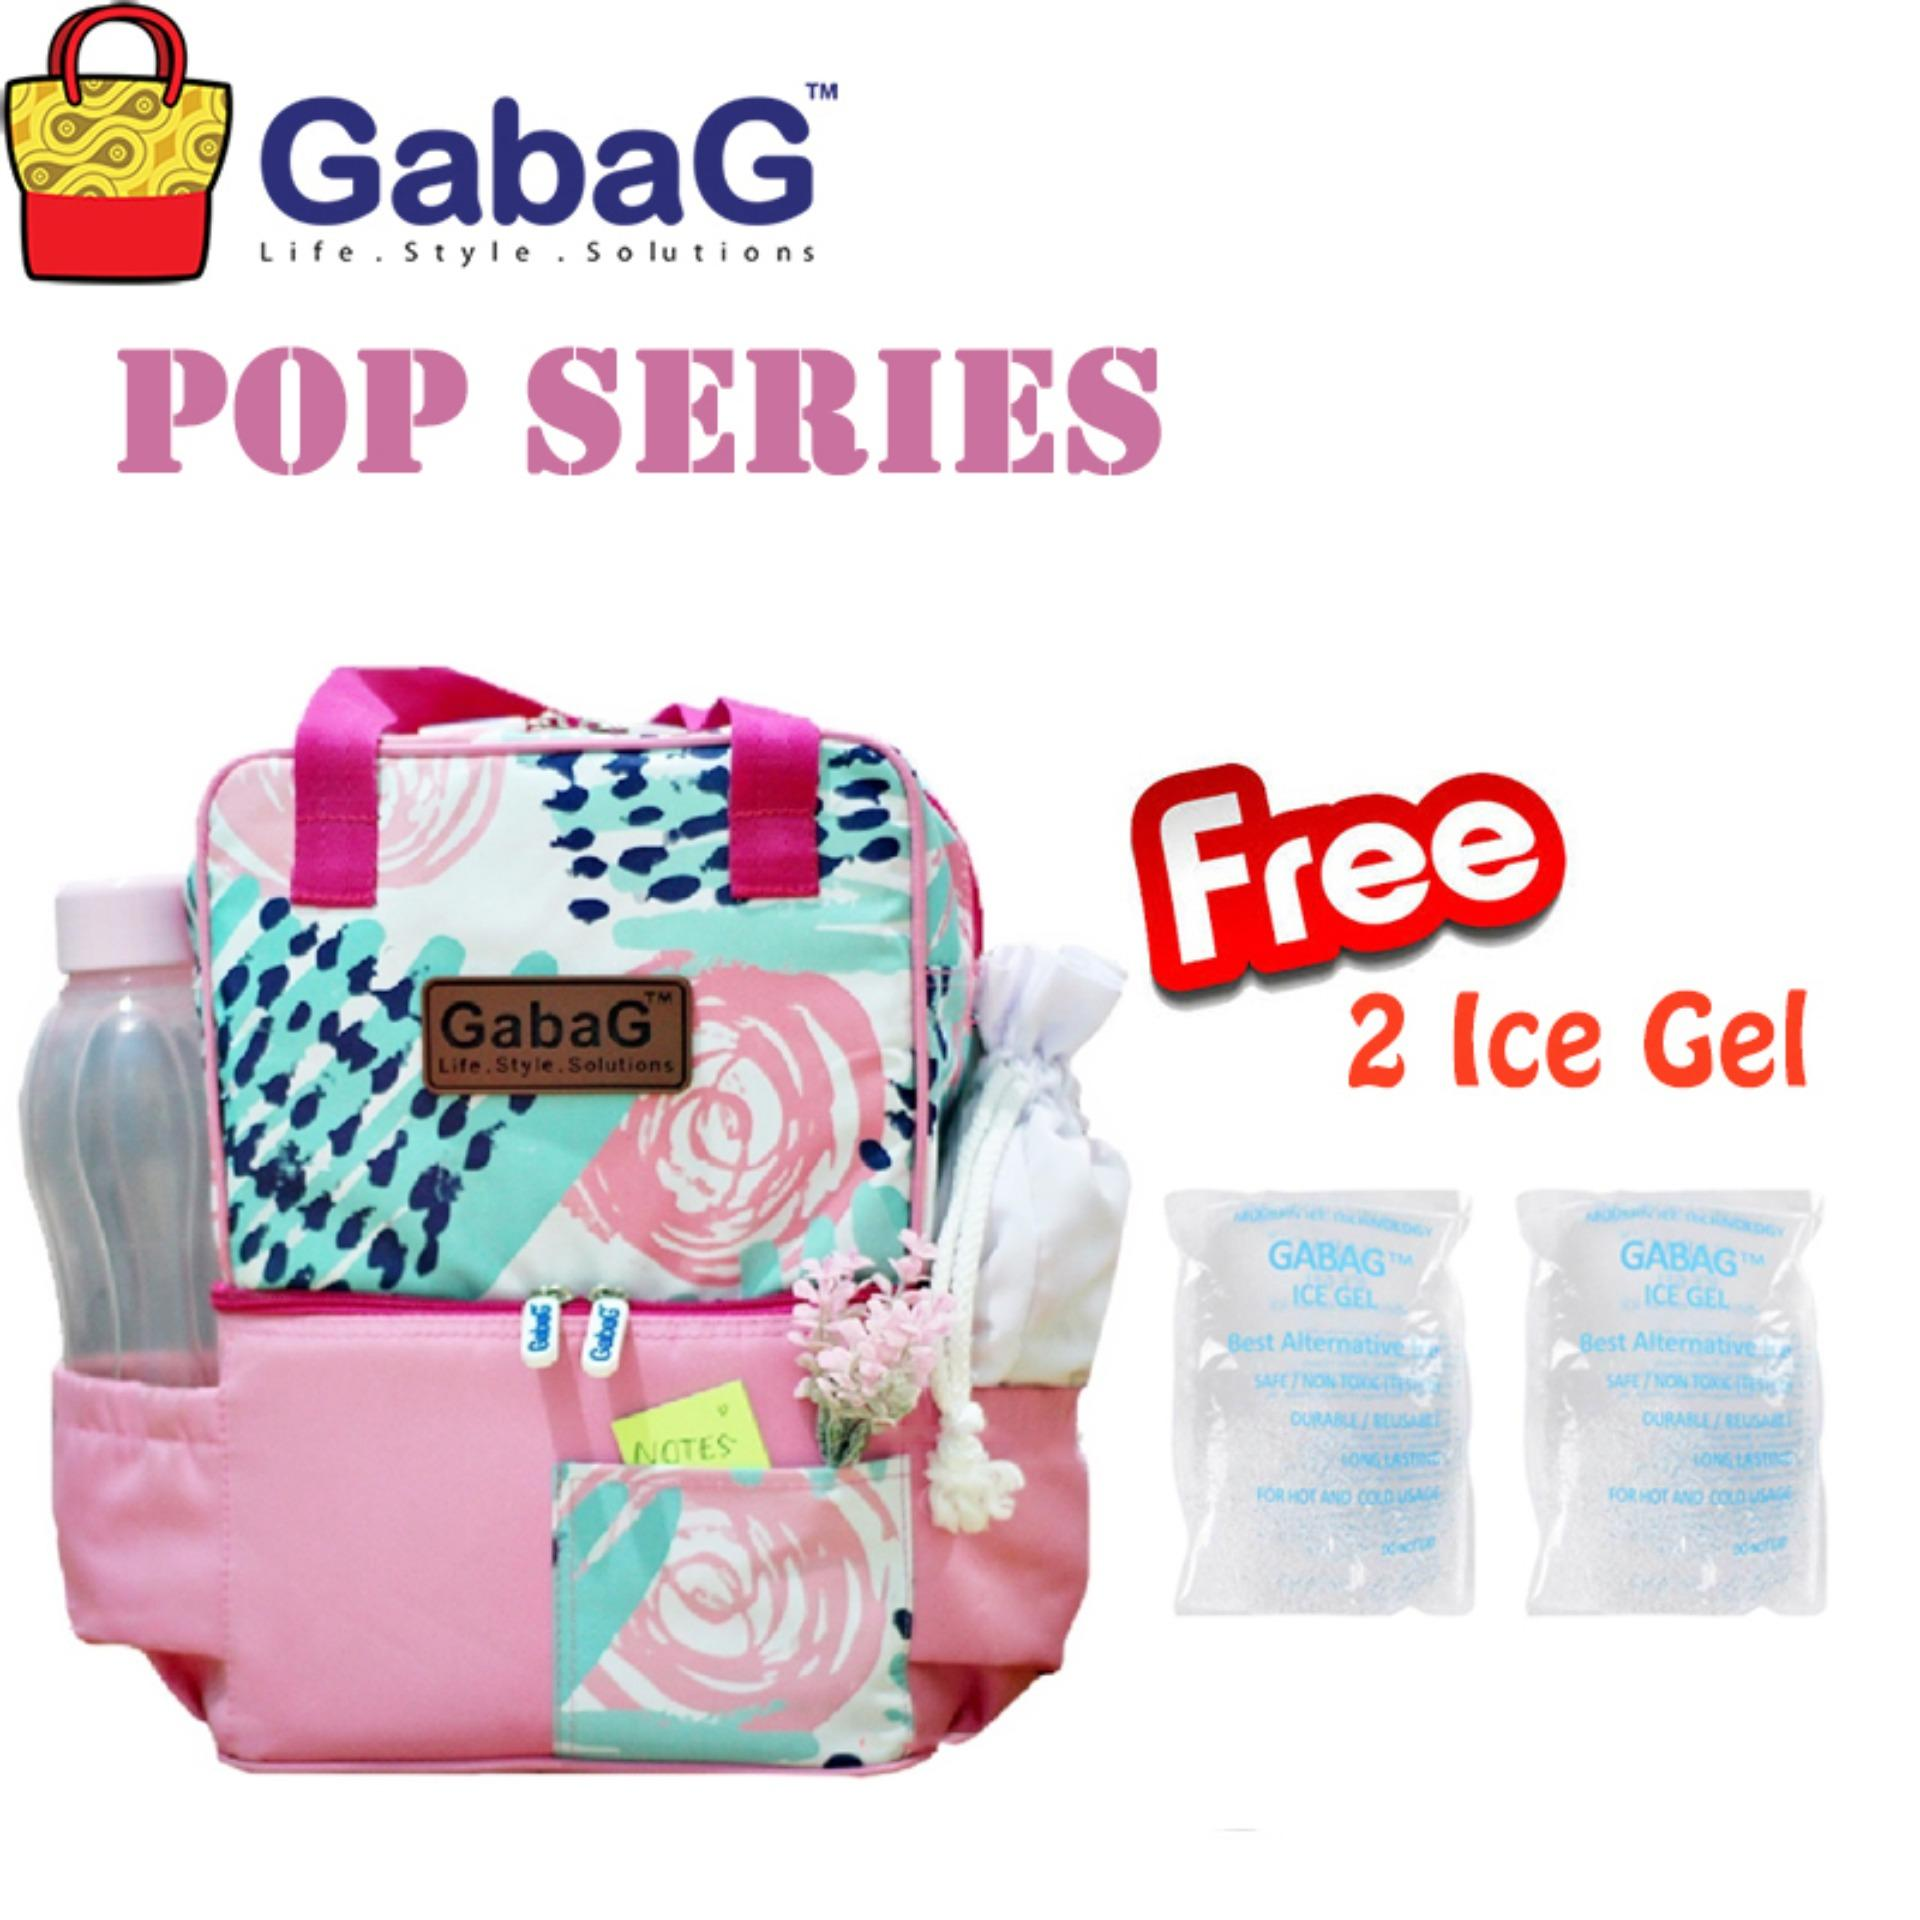 Promo Gabag Cooler Bag Pop Series Ceri Free 2 Ice Gel